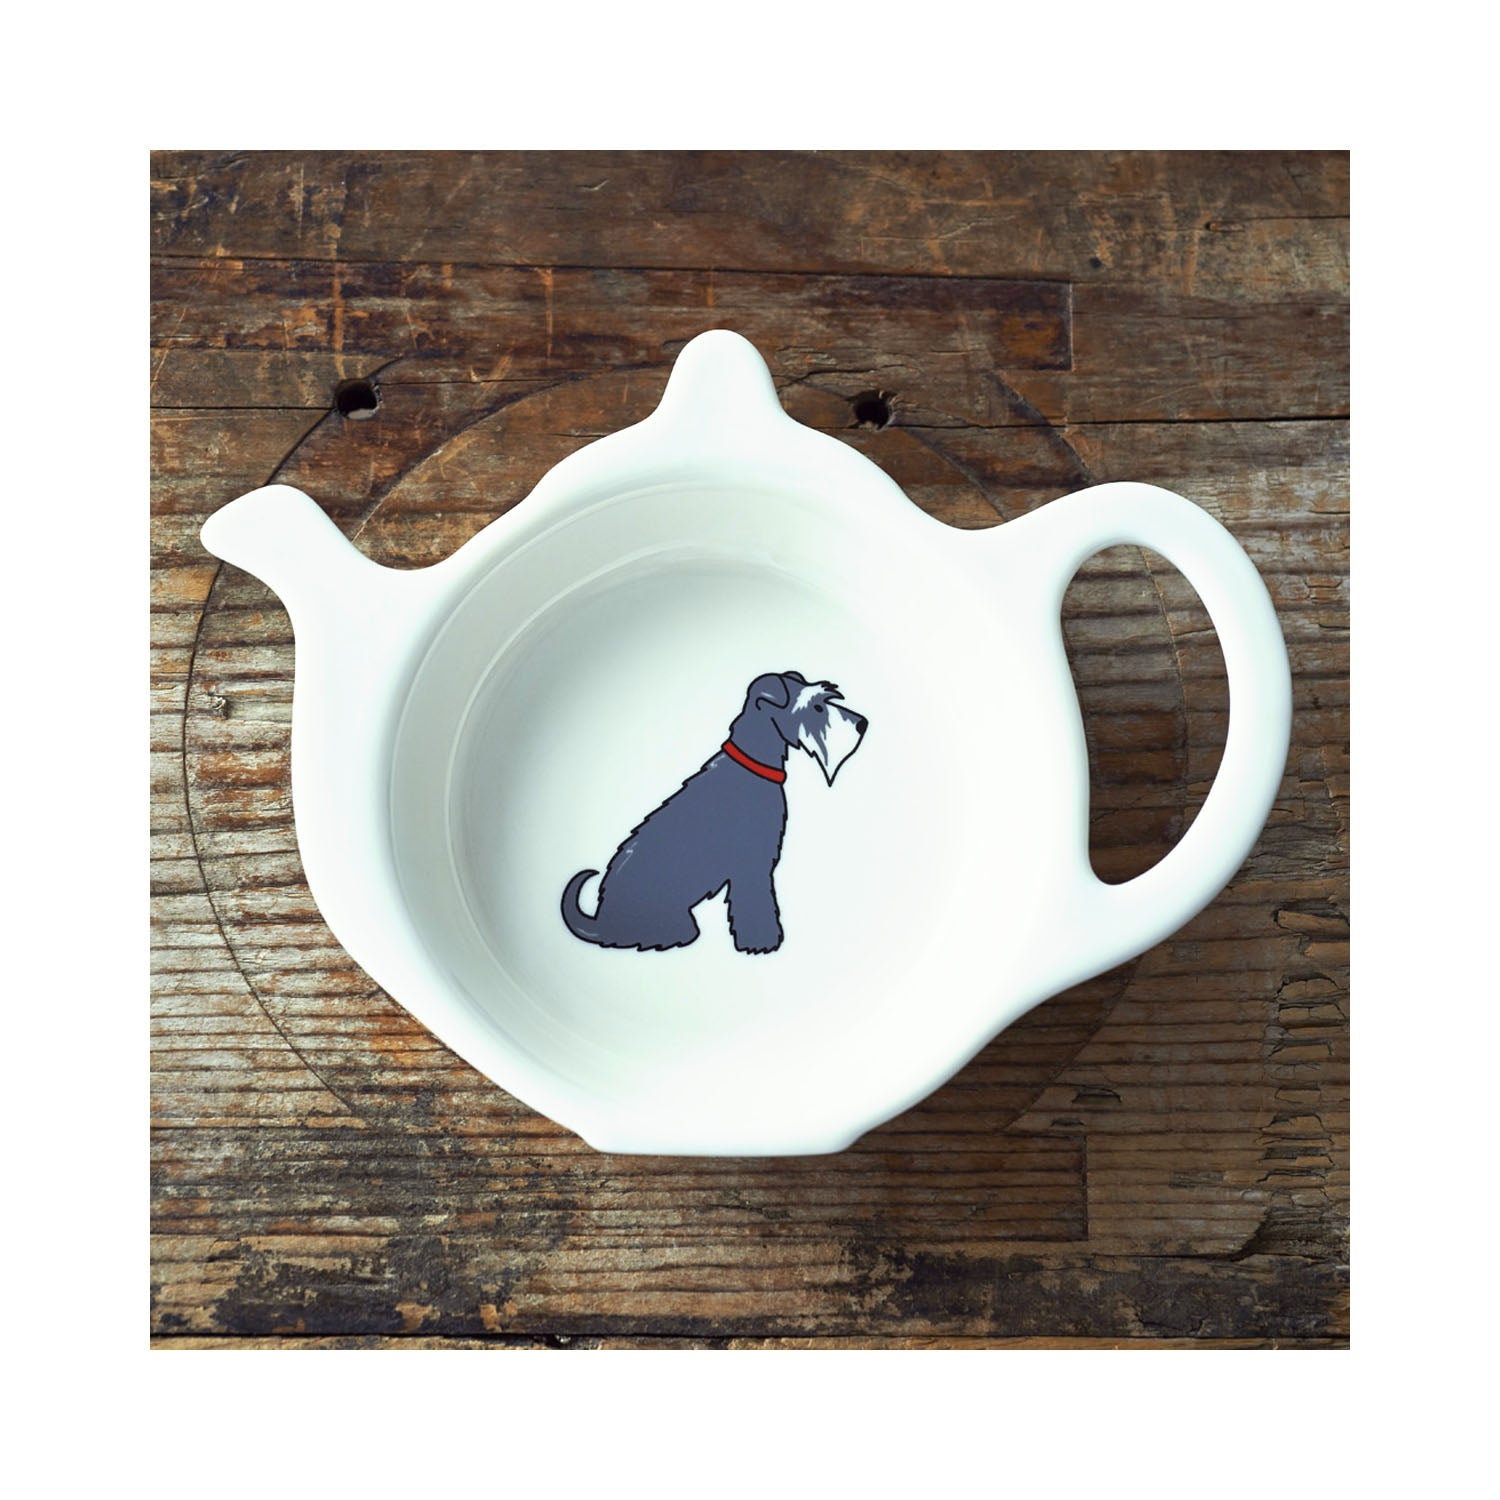 Dog Lover Gifts available at Dog Krazy Gifts - Eddie The Grey & White Schnauzer Teabag Dish - part of the Sweet William range available from Dog Krazy Gifts